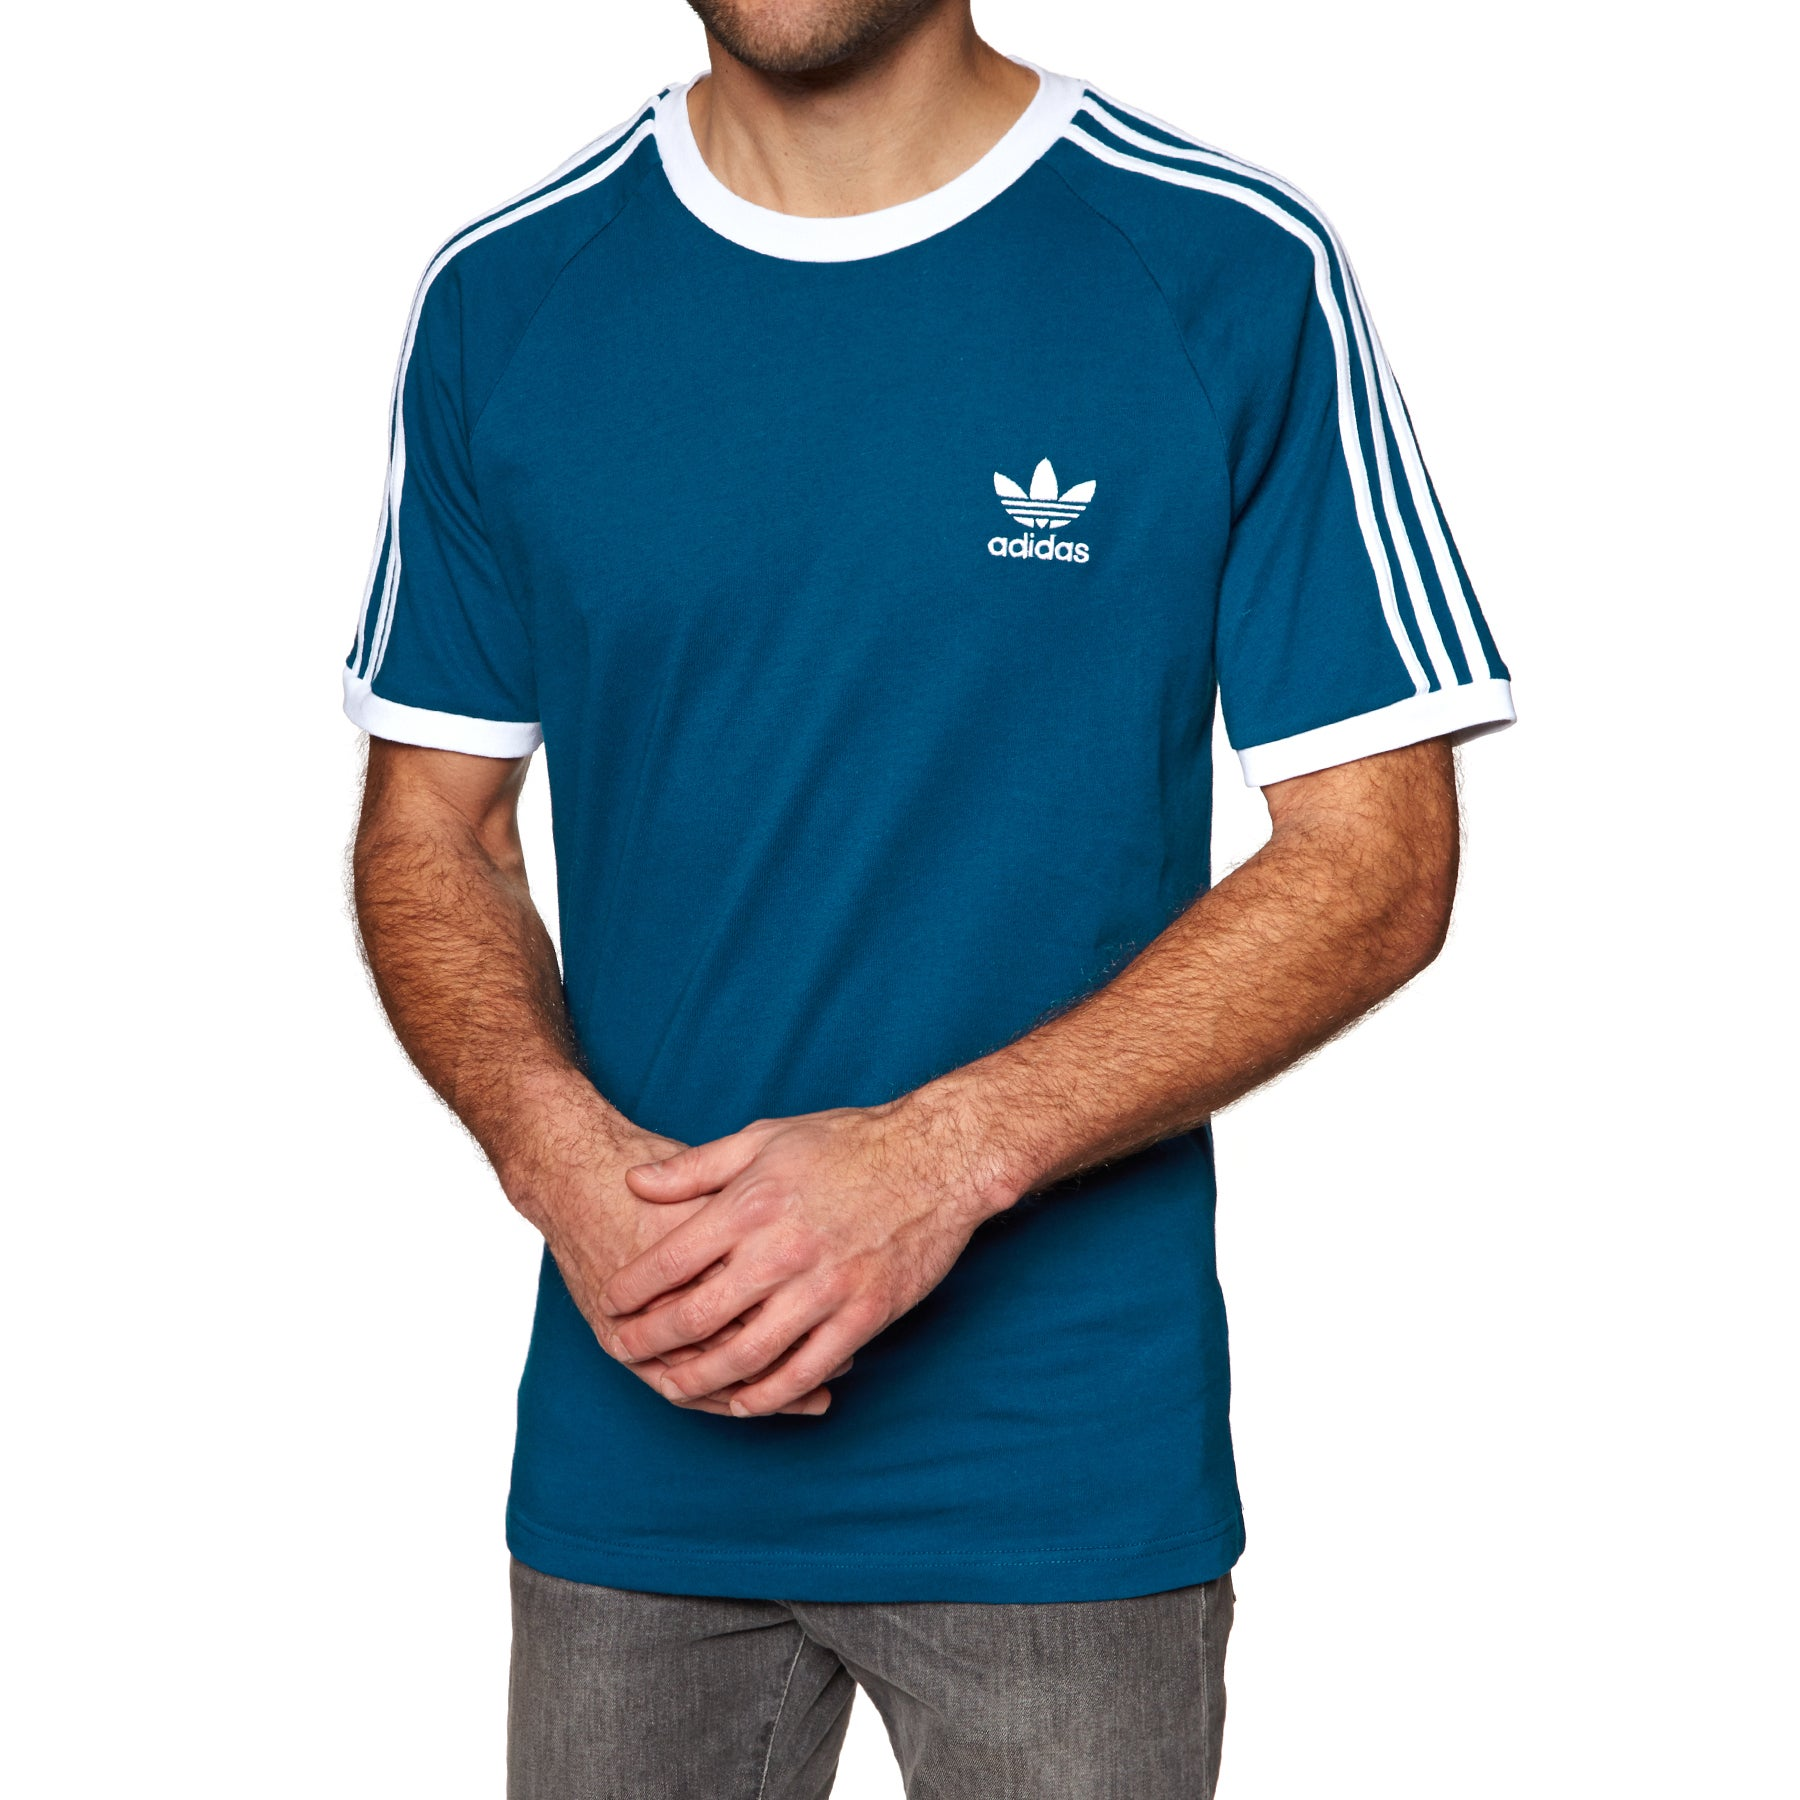 Adidas Originals 3 Stripes Short Sleeve T-Shirt - Legend Marine